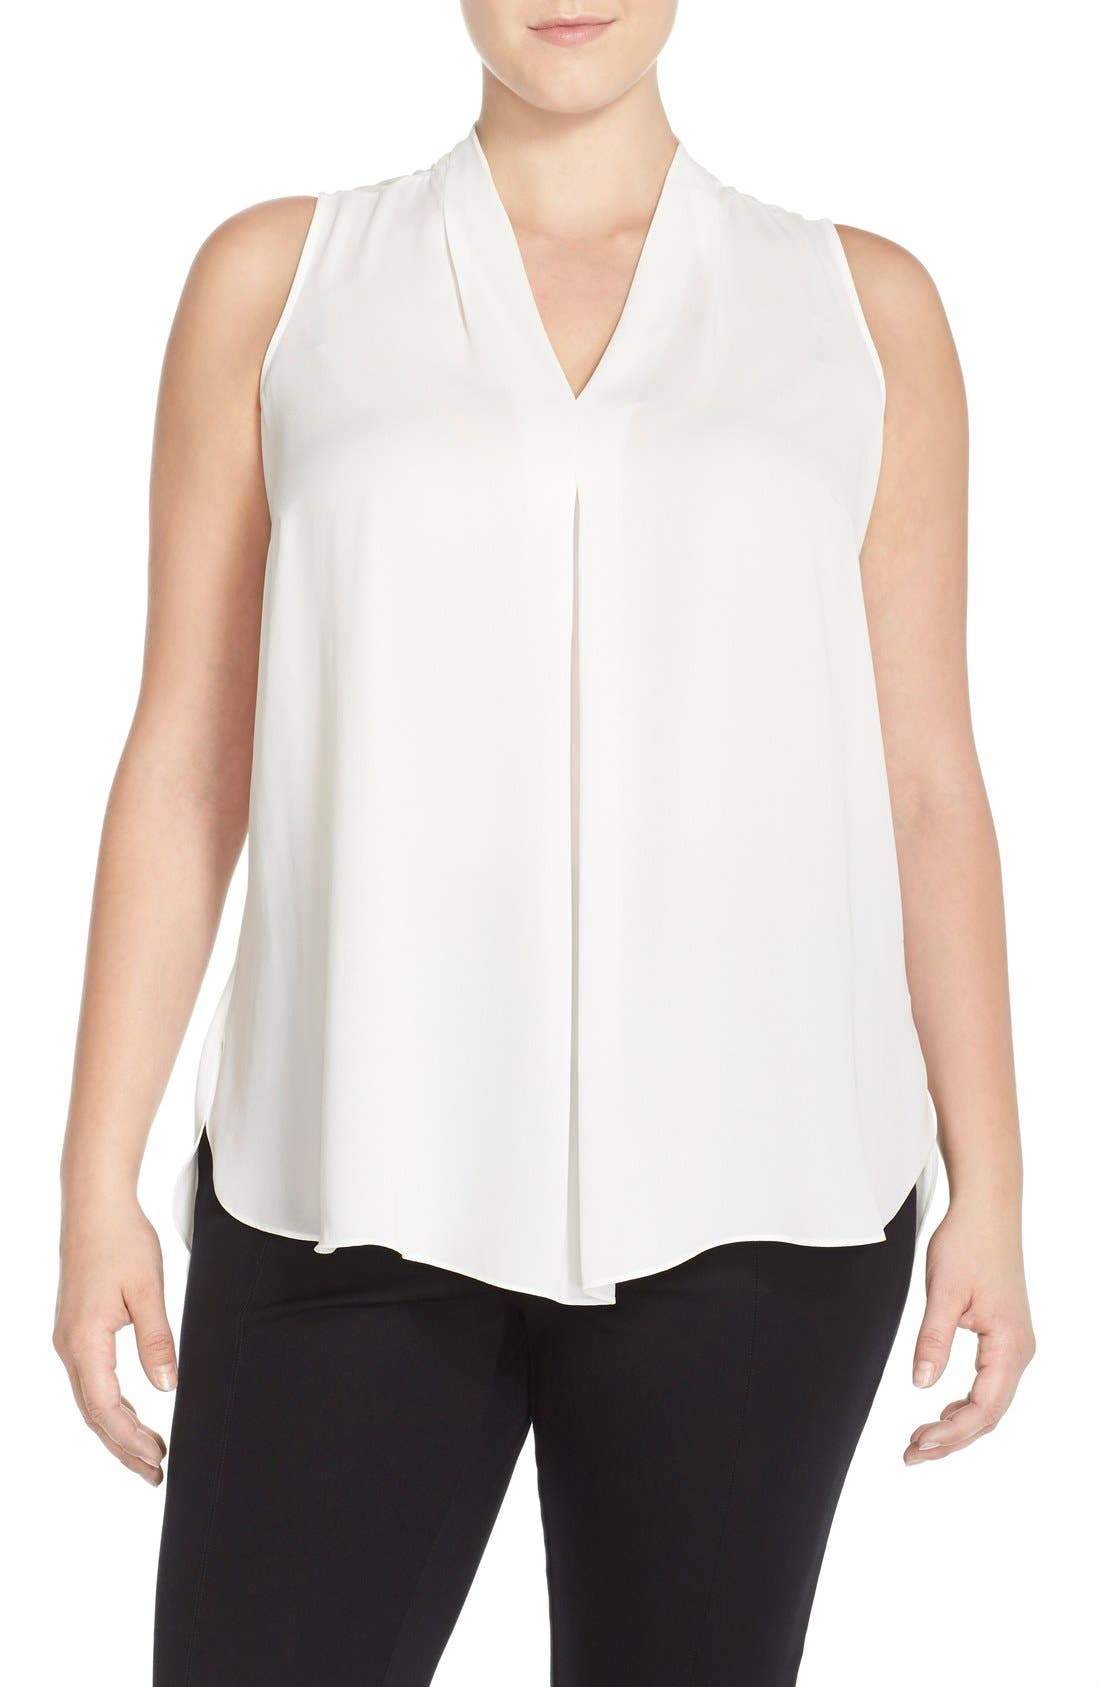 Vince Camuto Pleat Front V-Neck Sleeveless Blouse (Plus Size)